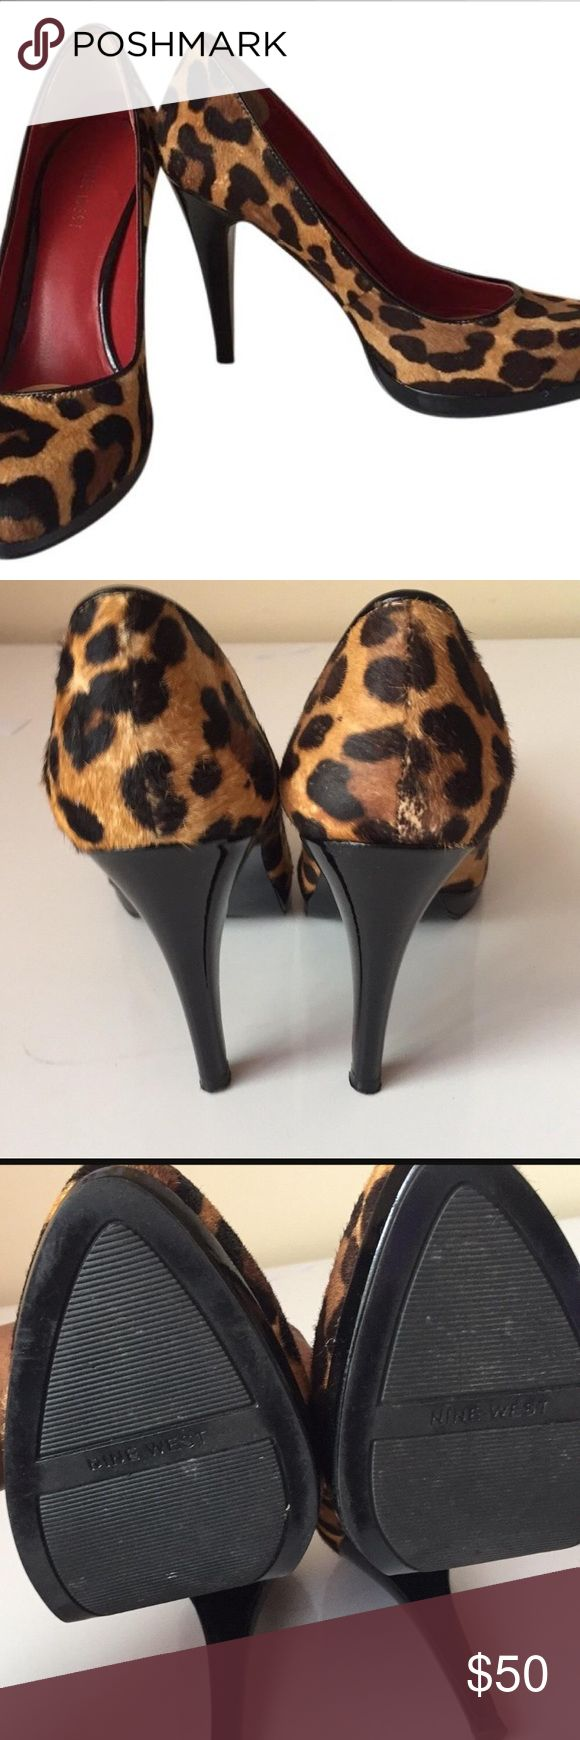 Nine West leopard print pumps size 7M Size 7M, padding was added to inner heel and foot bed. Platform pumps, only worn 3x. Leopard print pony or calf hair. Slight discolor of leopard print but not noticeable. Fabulous shoes! Nine West Shoes Platforms